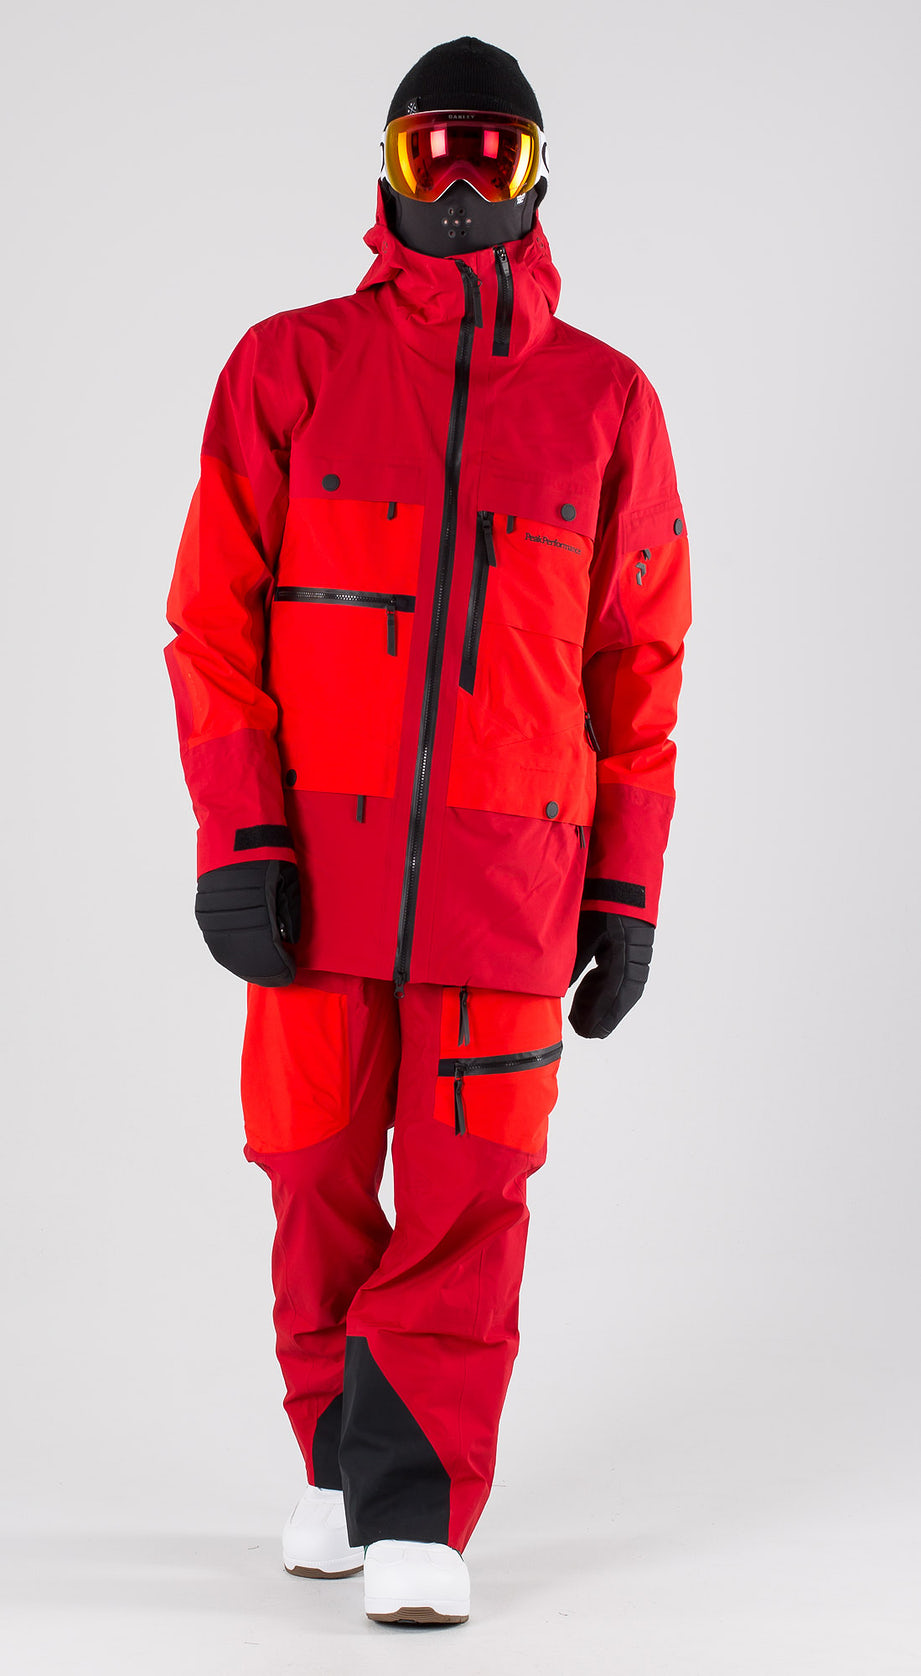 Peak Performance Vertical Dark Chilli Snowboardkleidung Multi